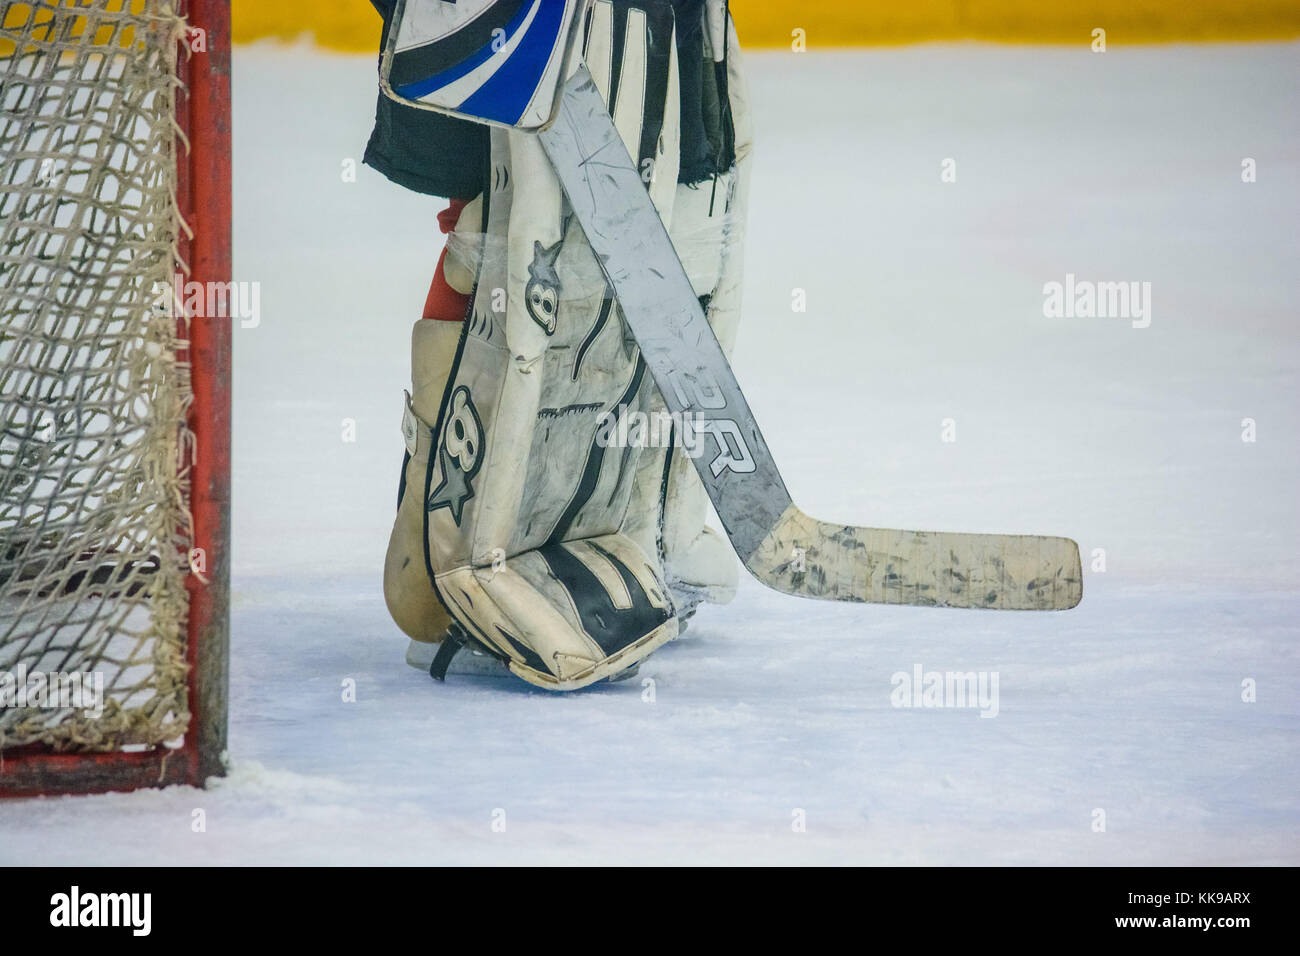 Closeup image of hockey goalkeeper's legs and feet in red and black uniform skating on ice - Stock Image